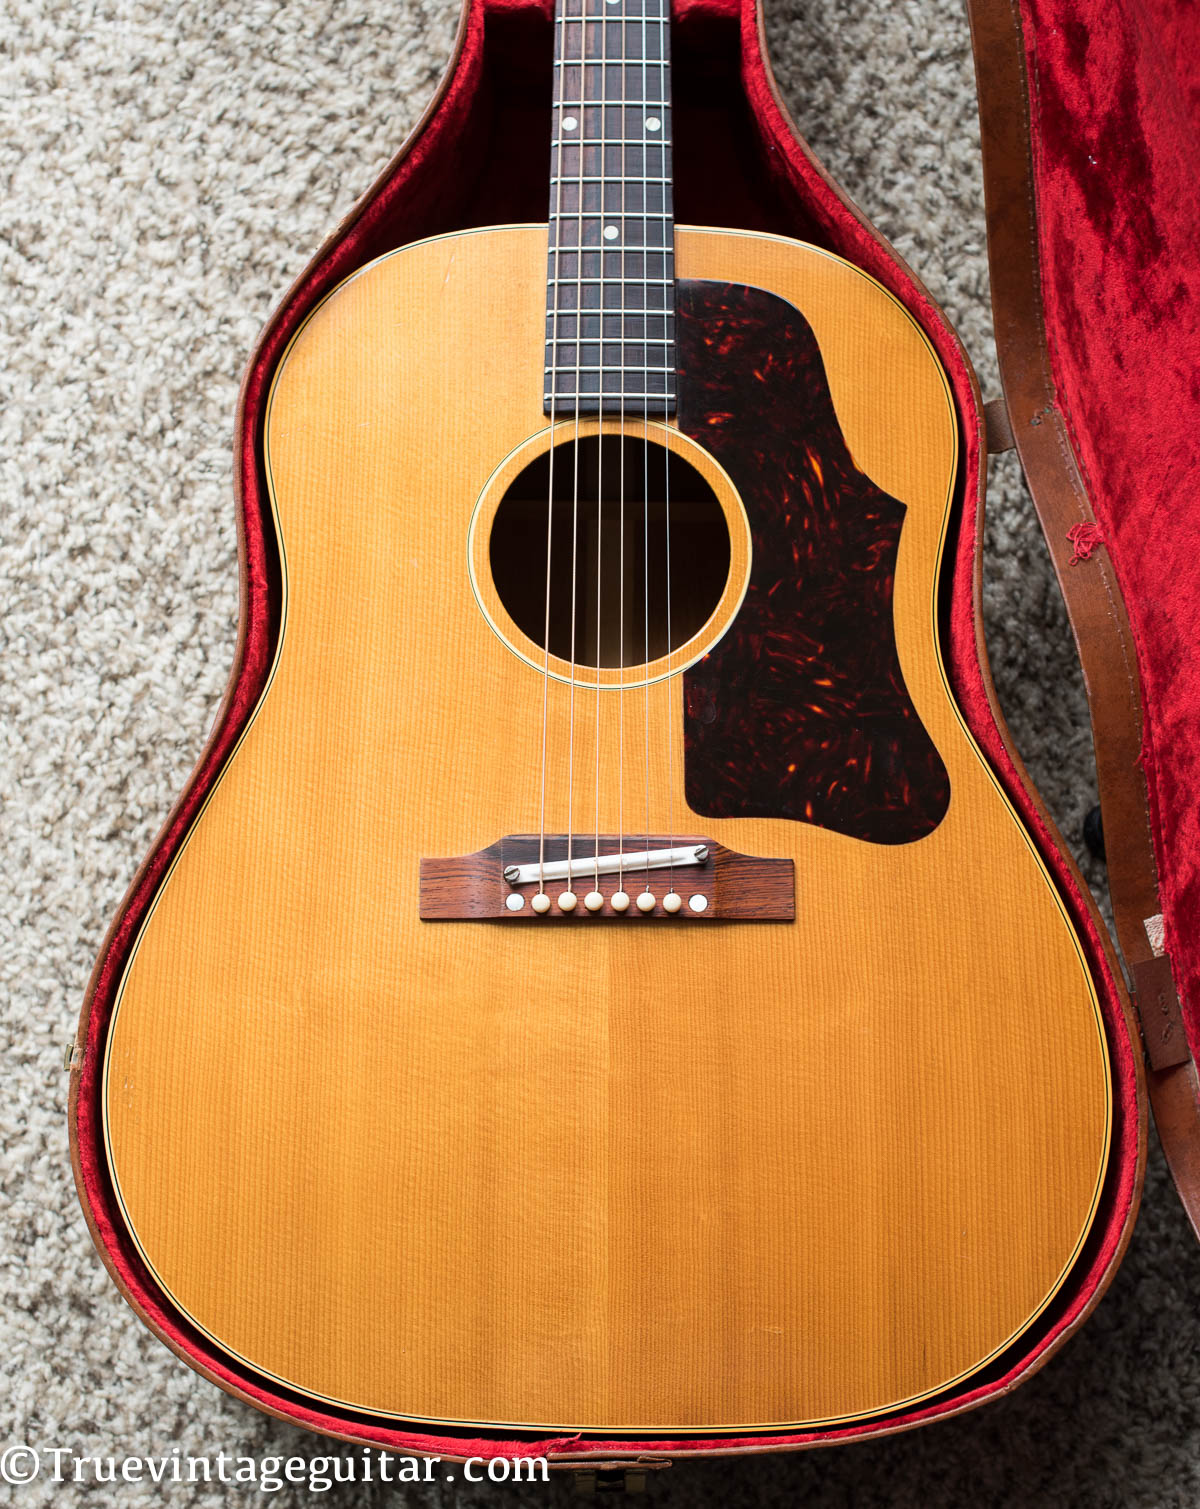 Gibson J-50 acoustic guitar 1962 vintage